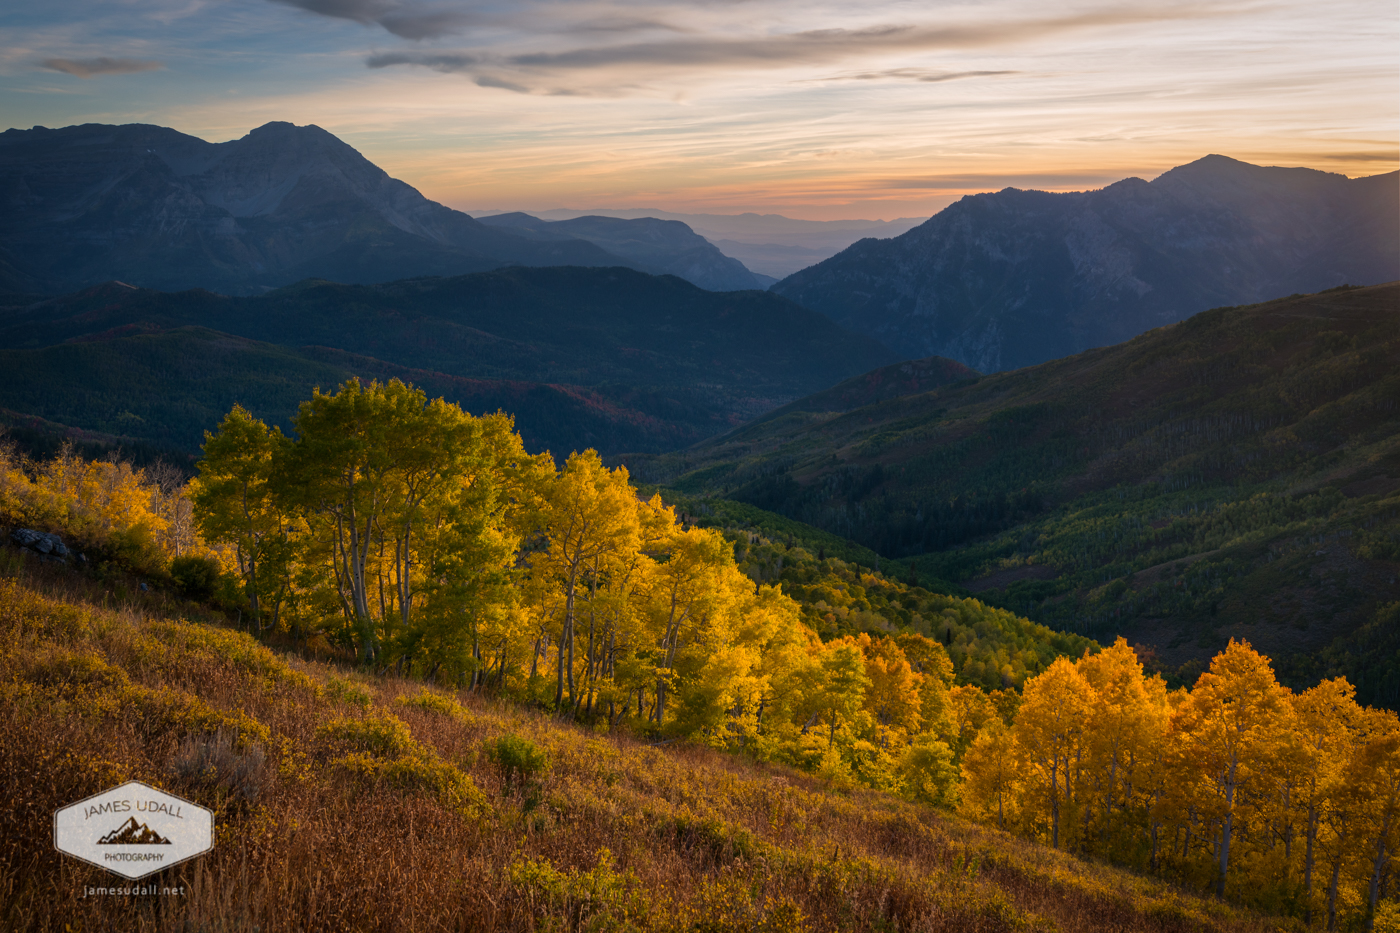 Utah S Wasatch In The Fall Is Golden James Udall